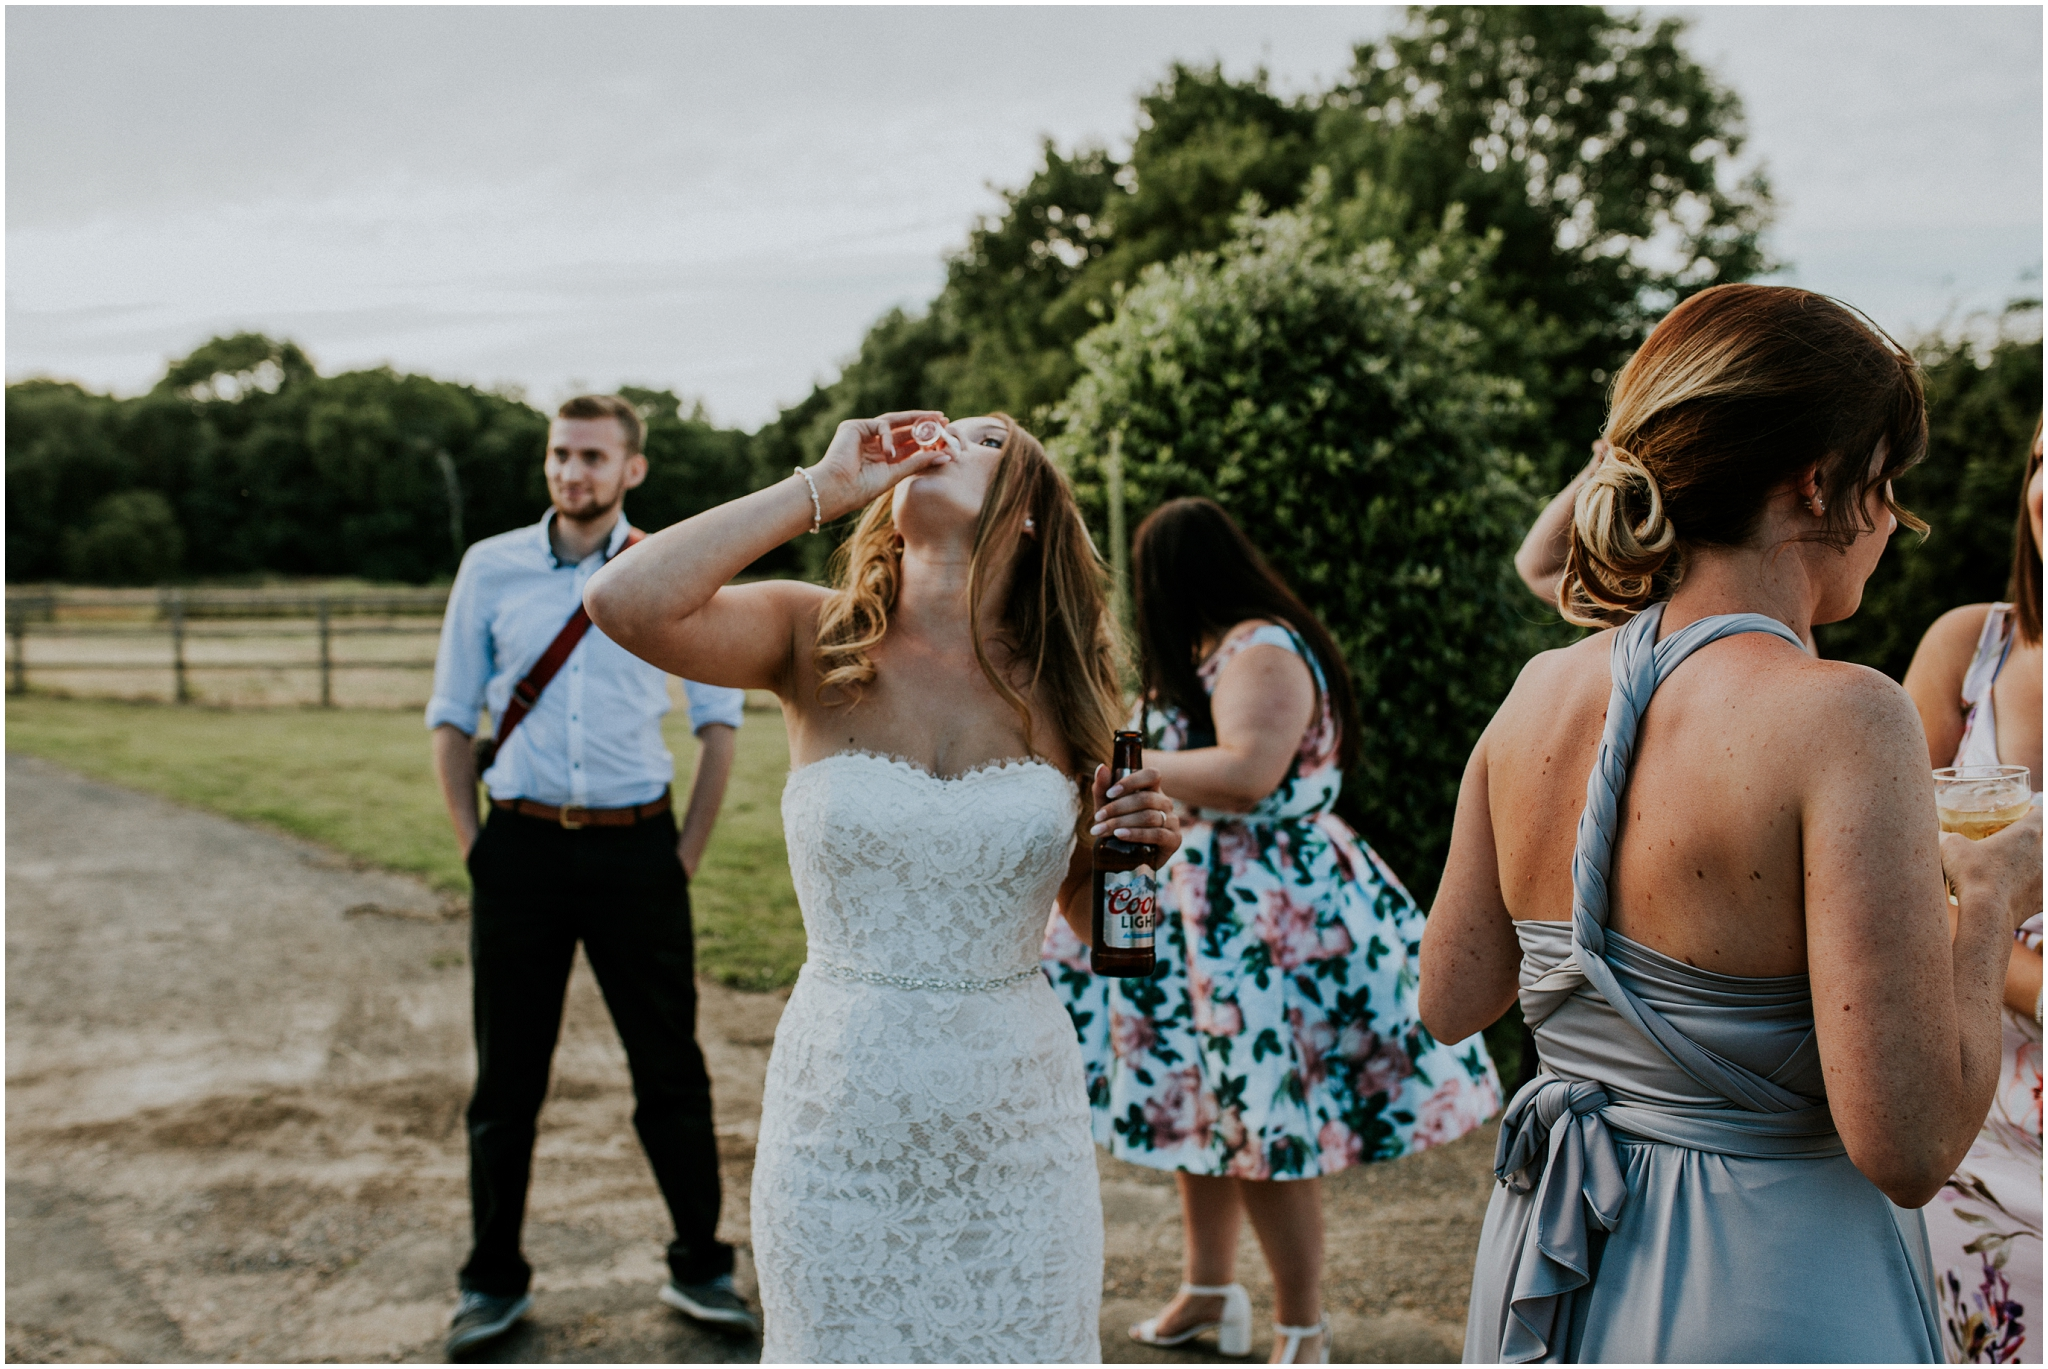 super cool bride doing a shot while holding a beer